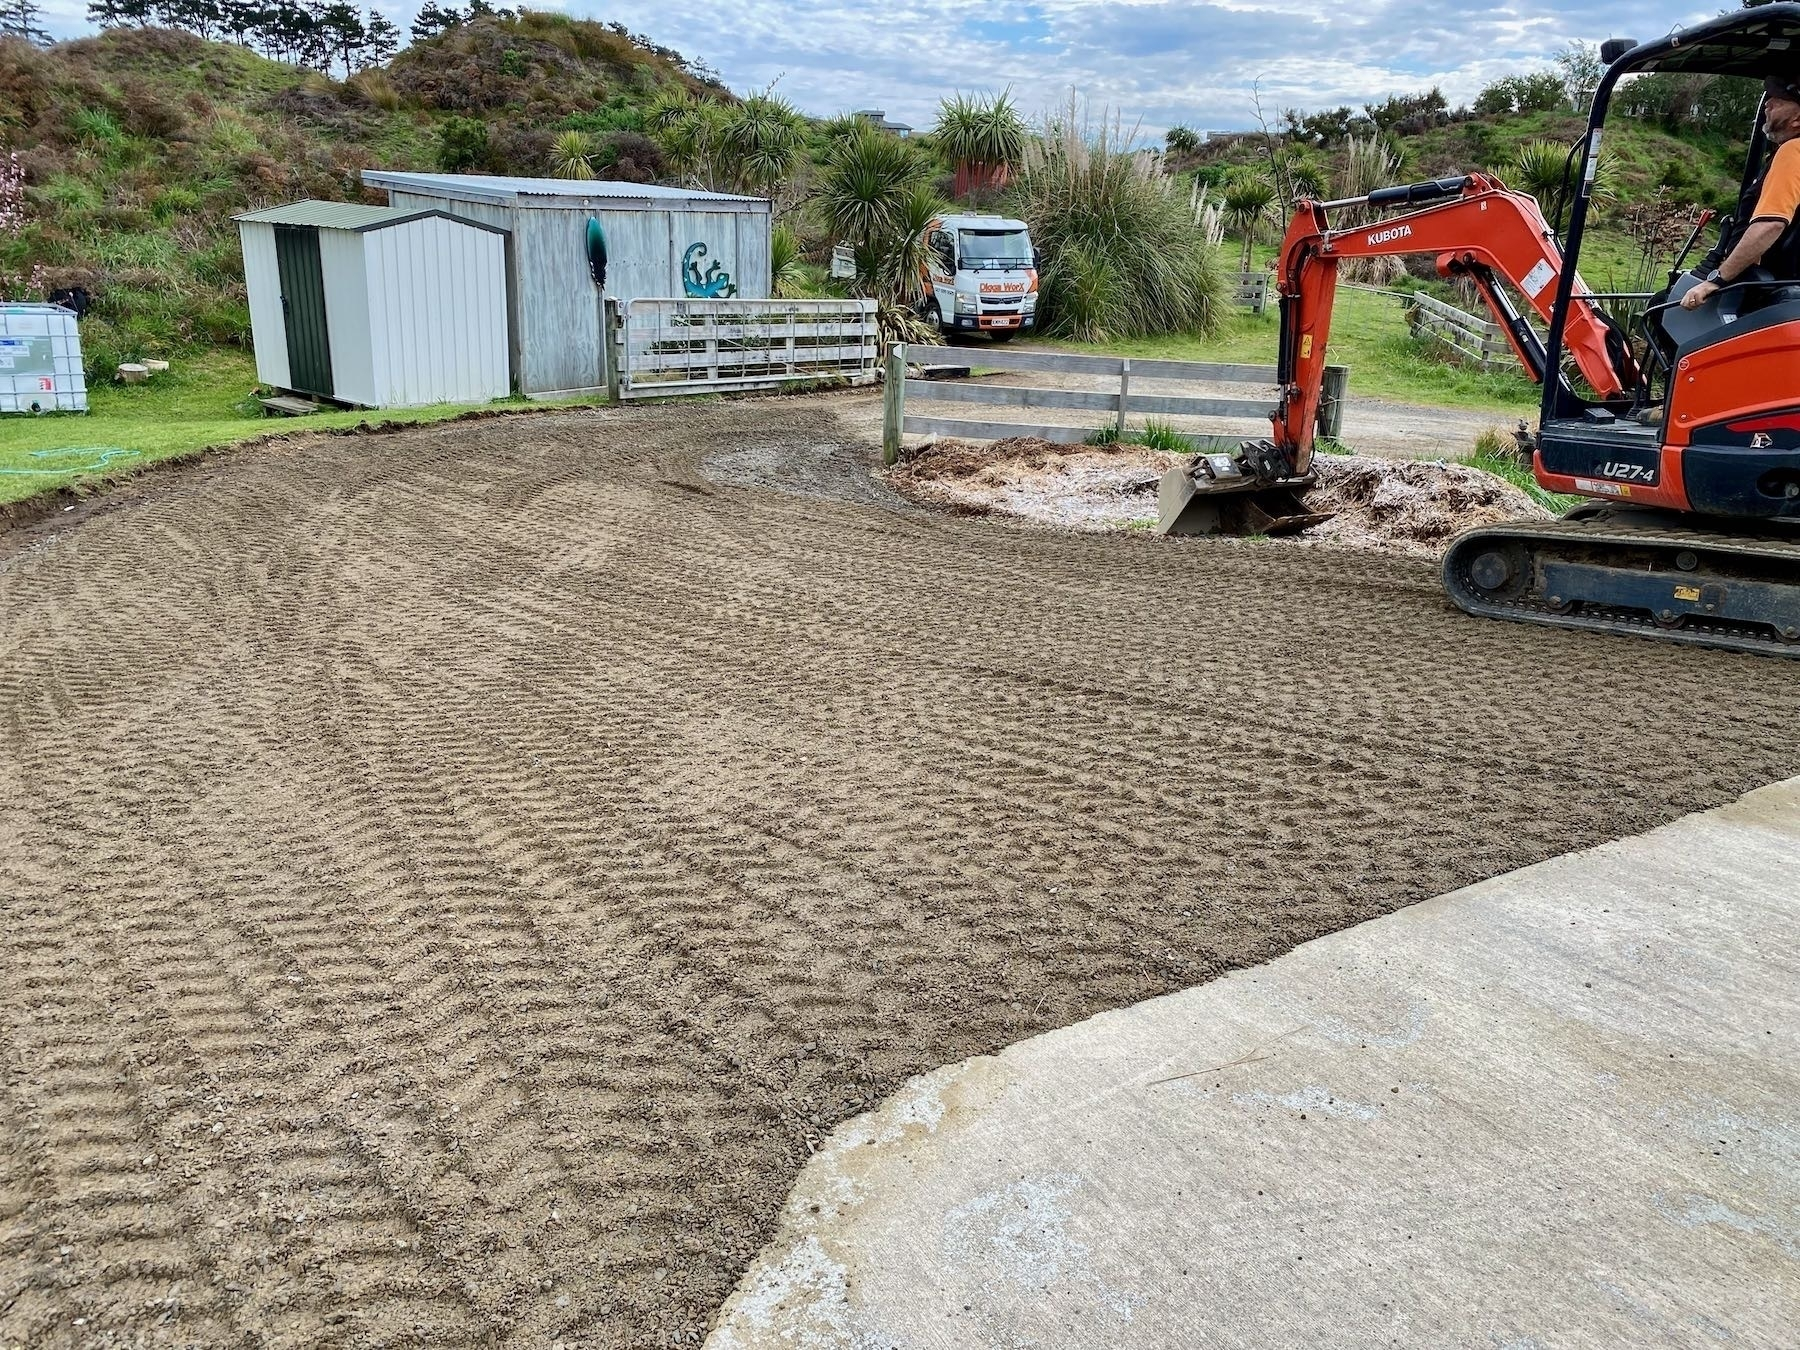 A fresh layer of shingle on the driveway, showing digger tread tracks.